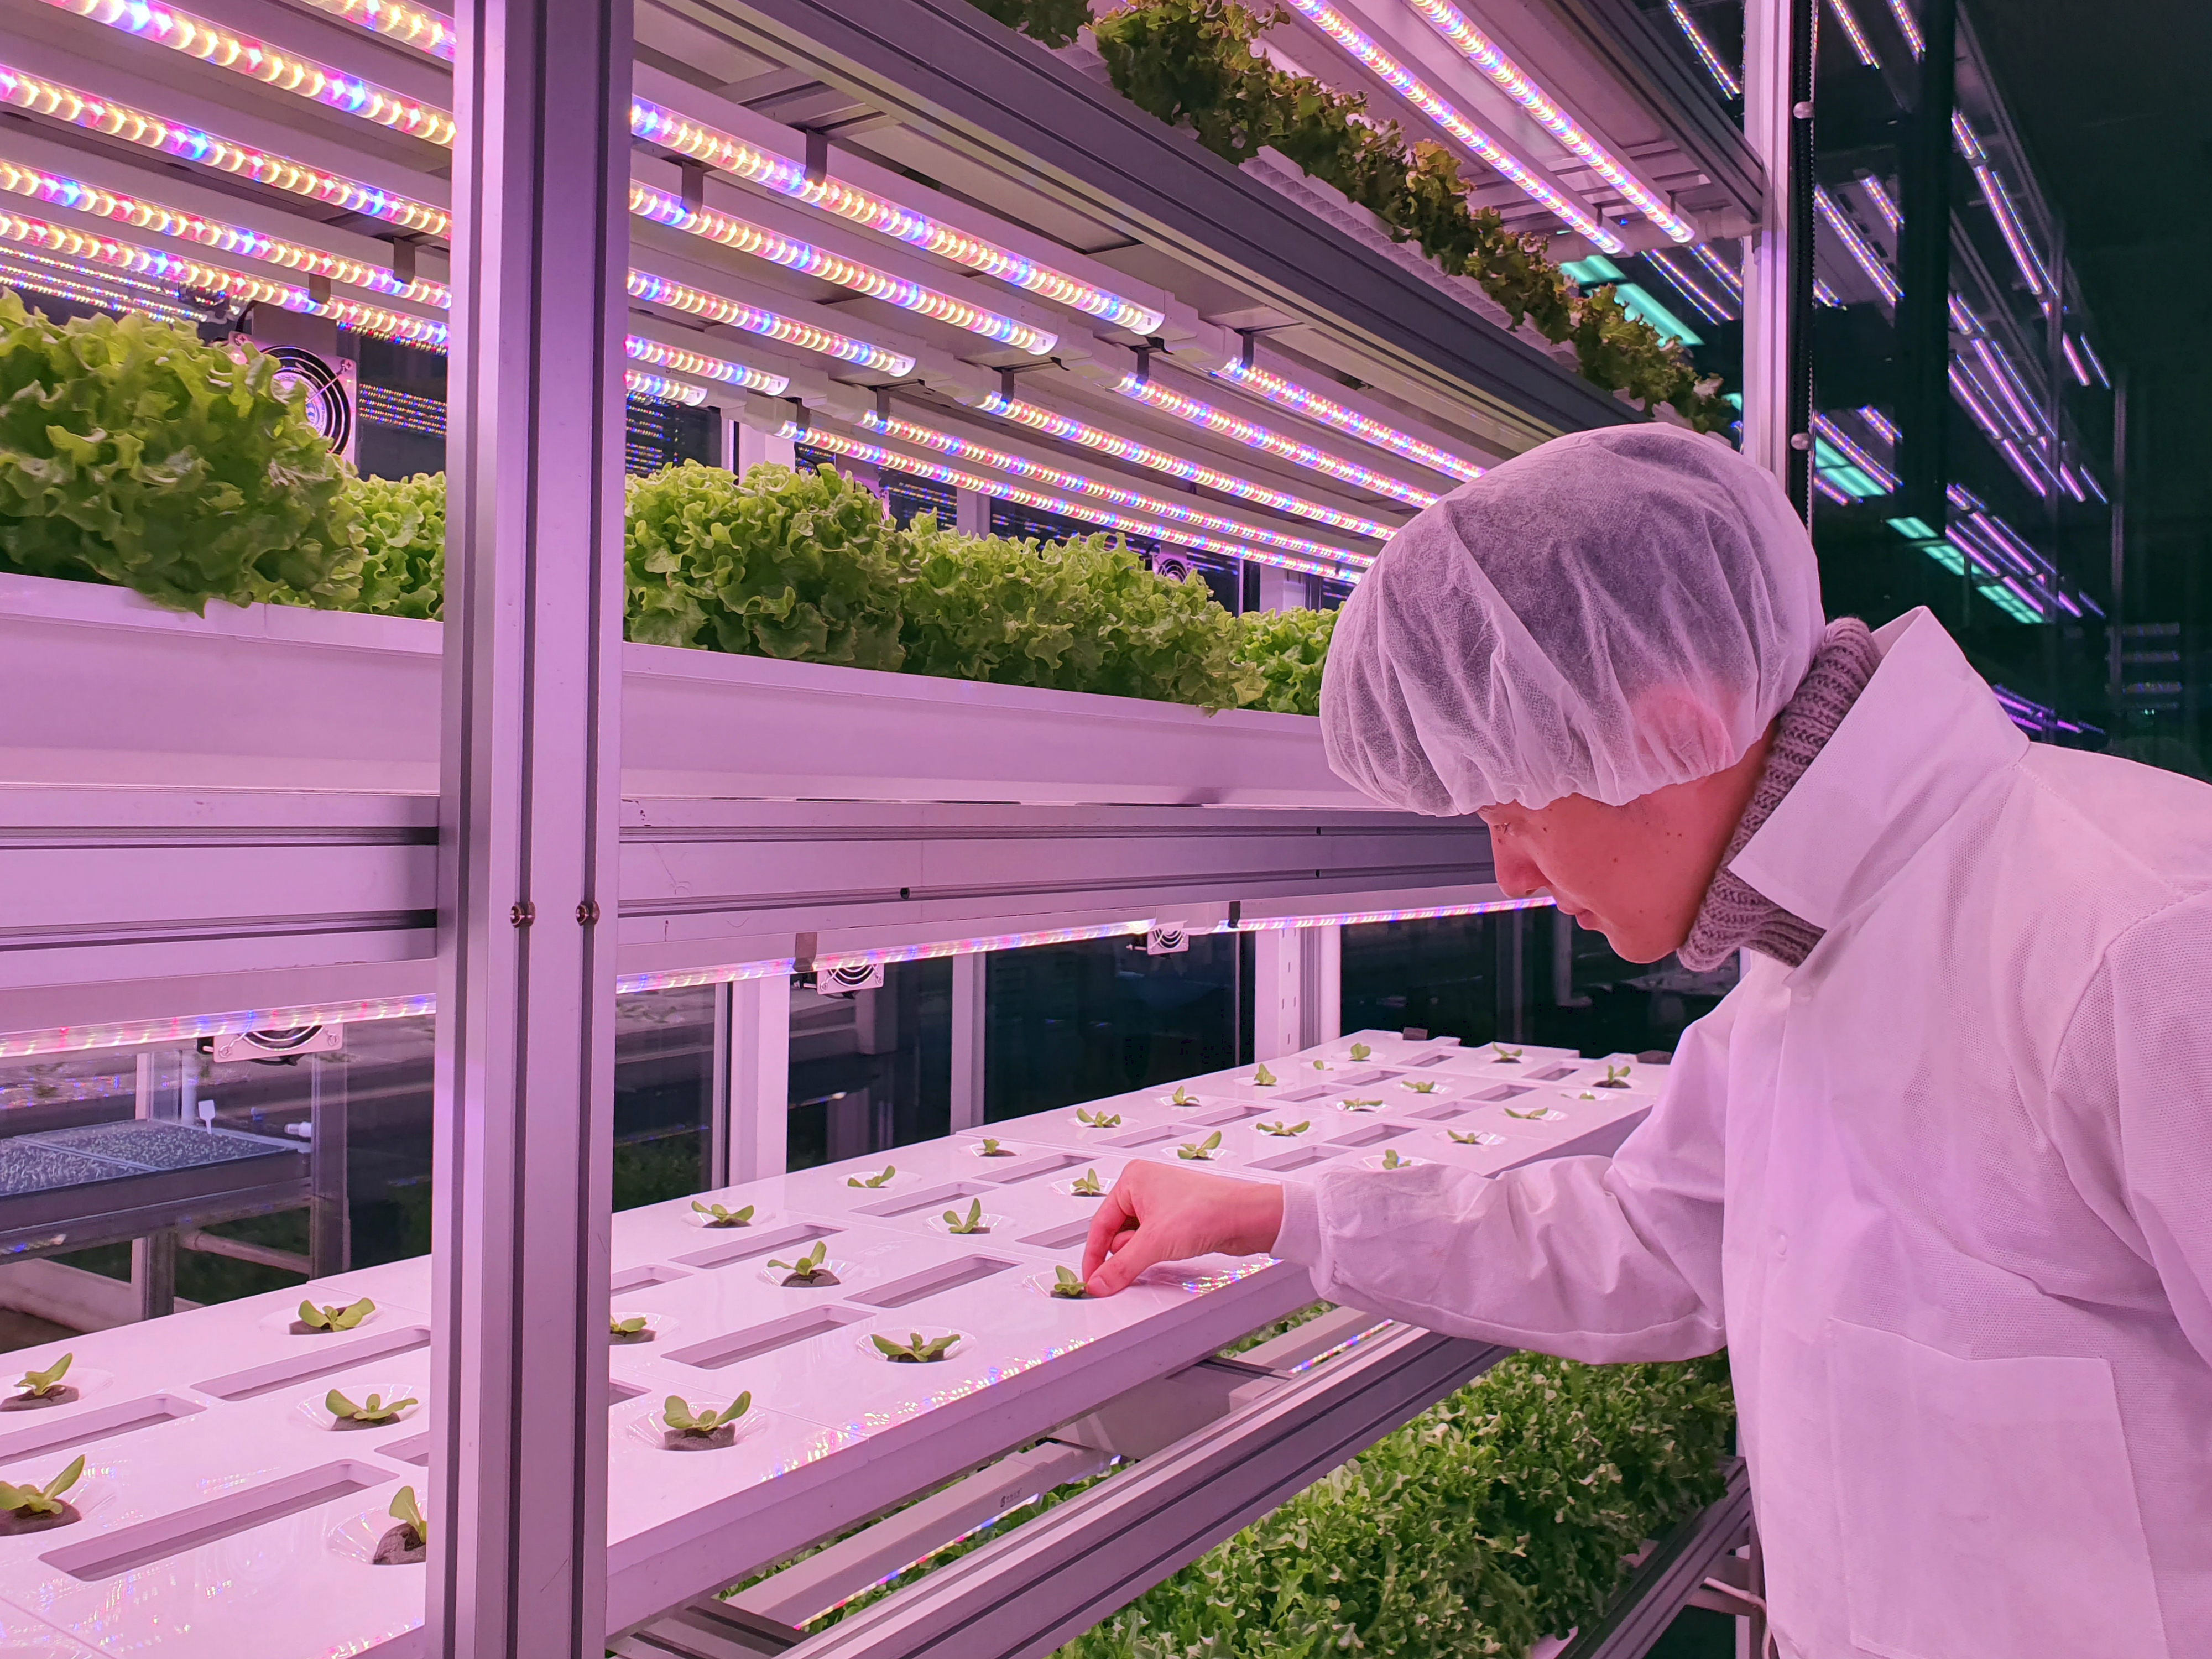 Challenges and opportunities in vertical farming: What is needed to fulfil the potential in Europe? Danish and French perspectives